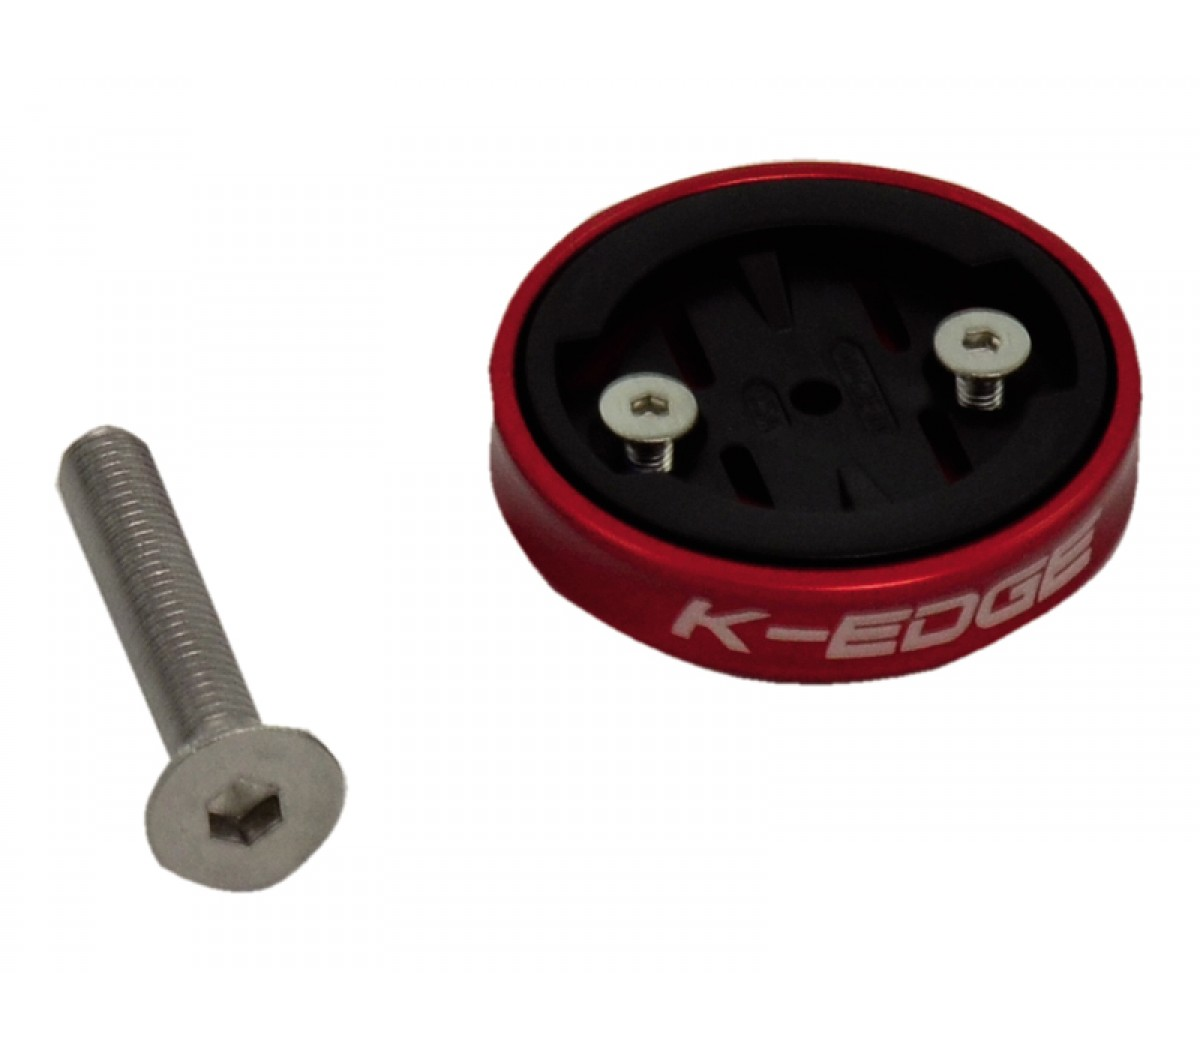 Computerdl K-Edge Road/Mtb Montagesteun Top Cap Rood